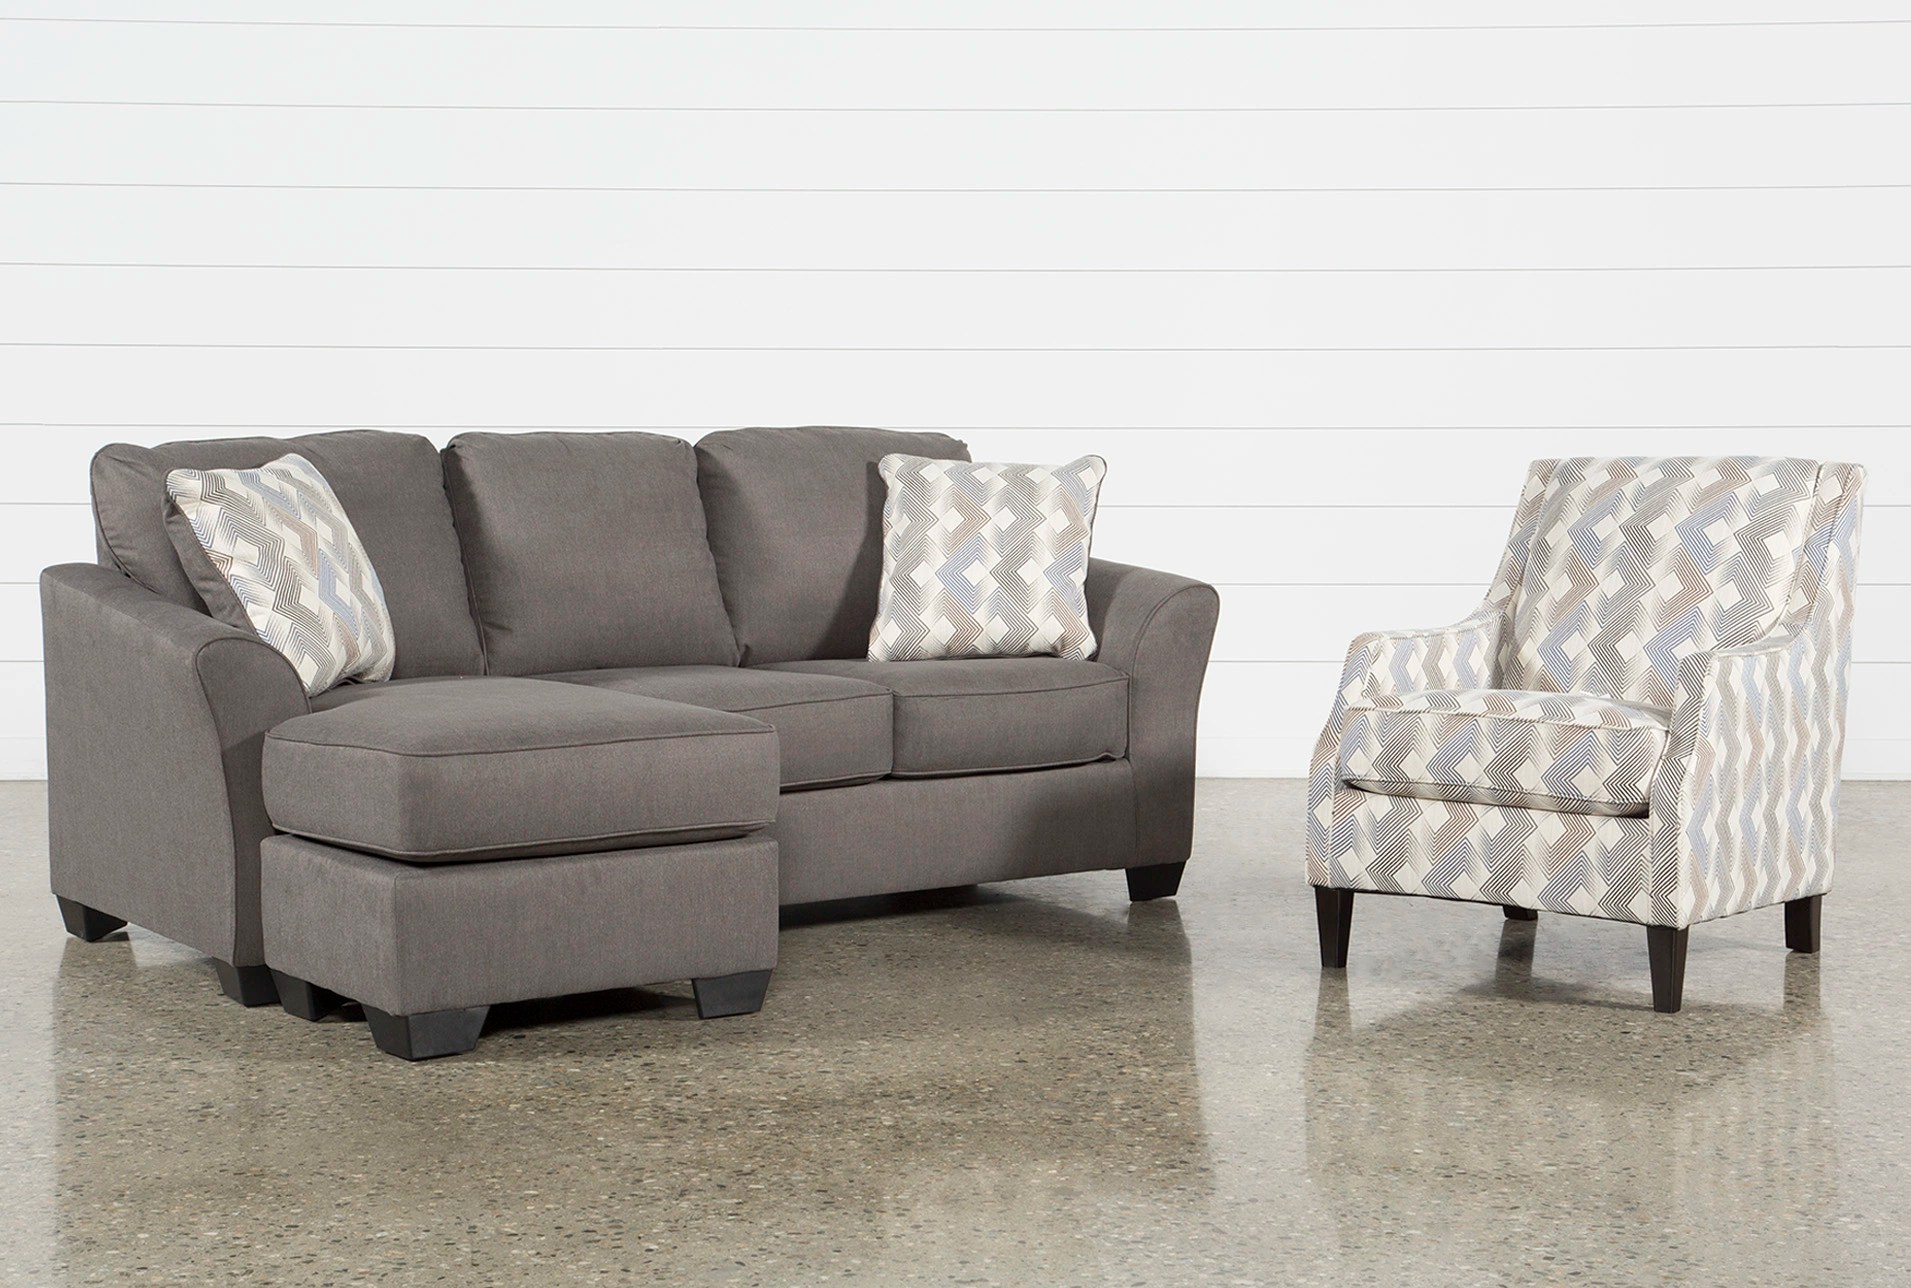 Accent Chair Living Room Tucker 2 Piece Living Room Set With Queen Sleeper And Accent Chair